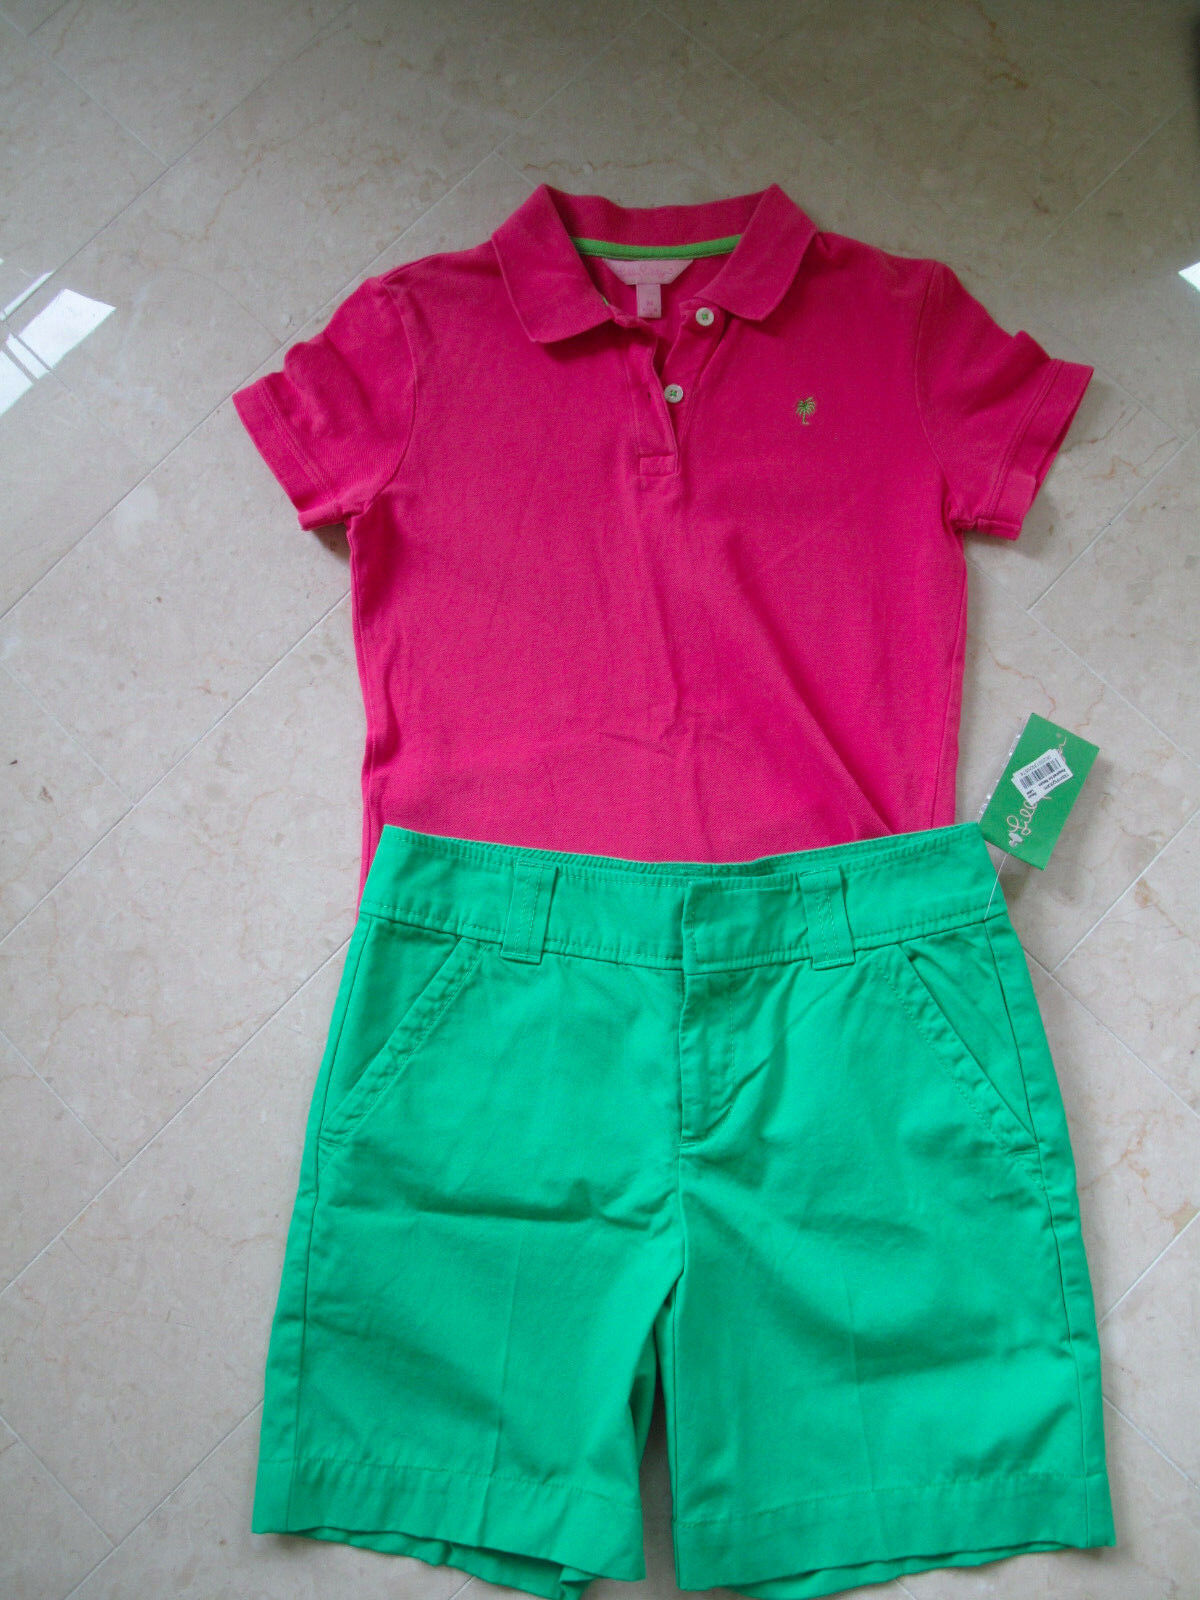 Lilly Pulitzer pink polo shirt and green short set NWT SIze XS